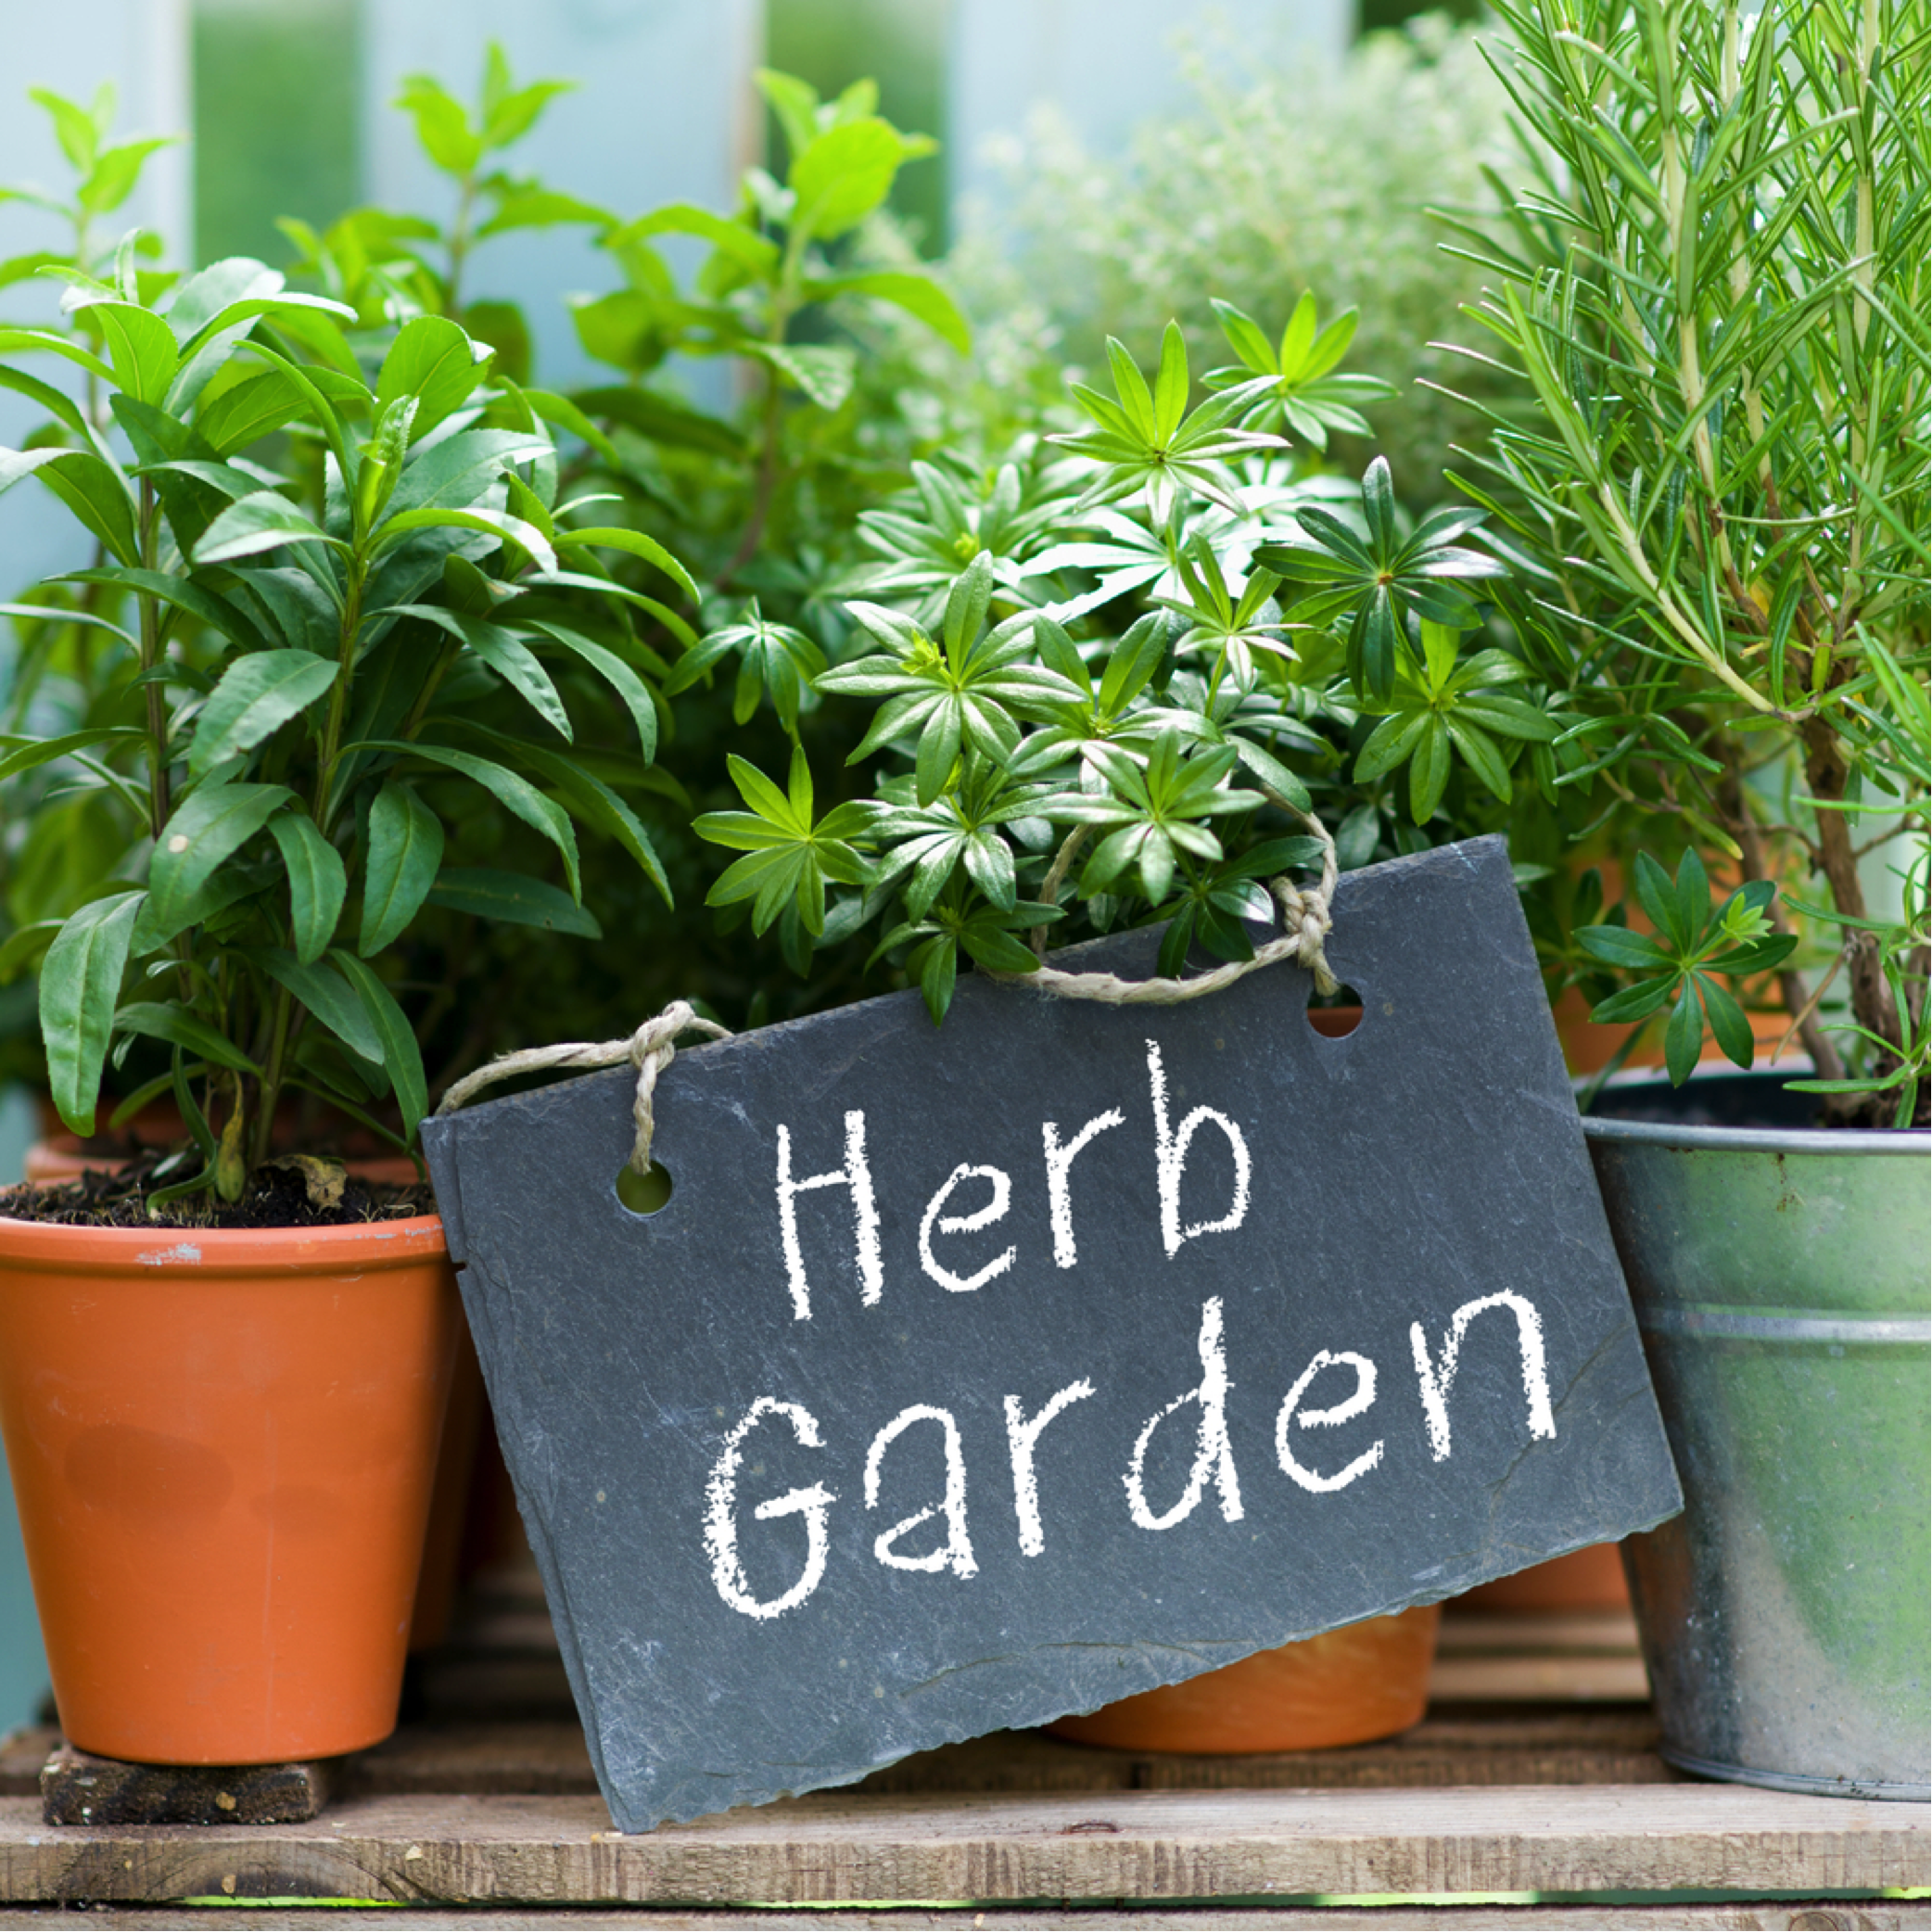 Save Money on Groceries by Apartment Gardening -Decide What You Want